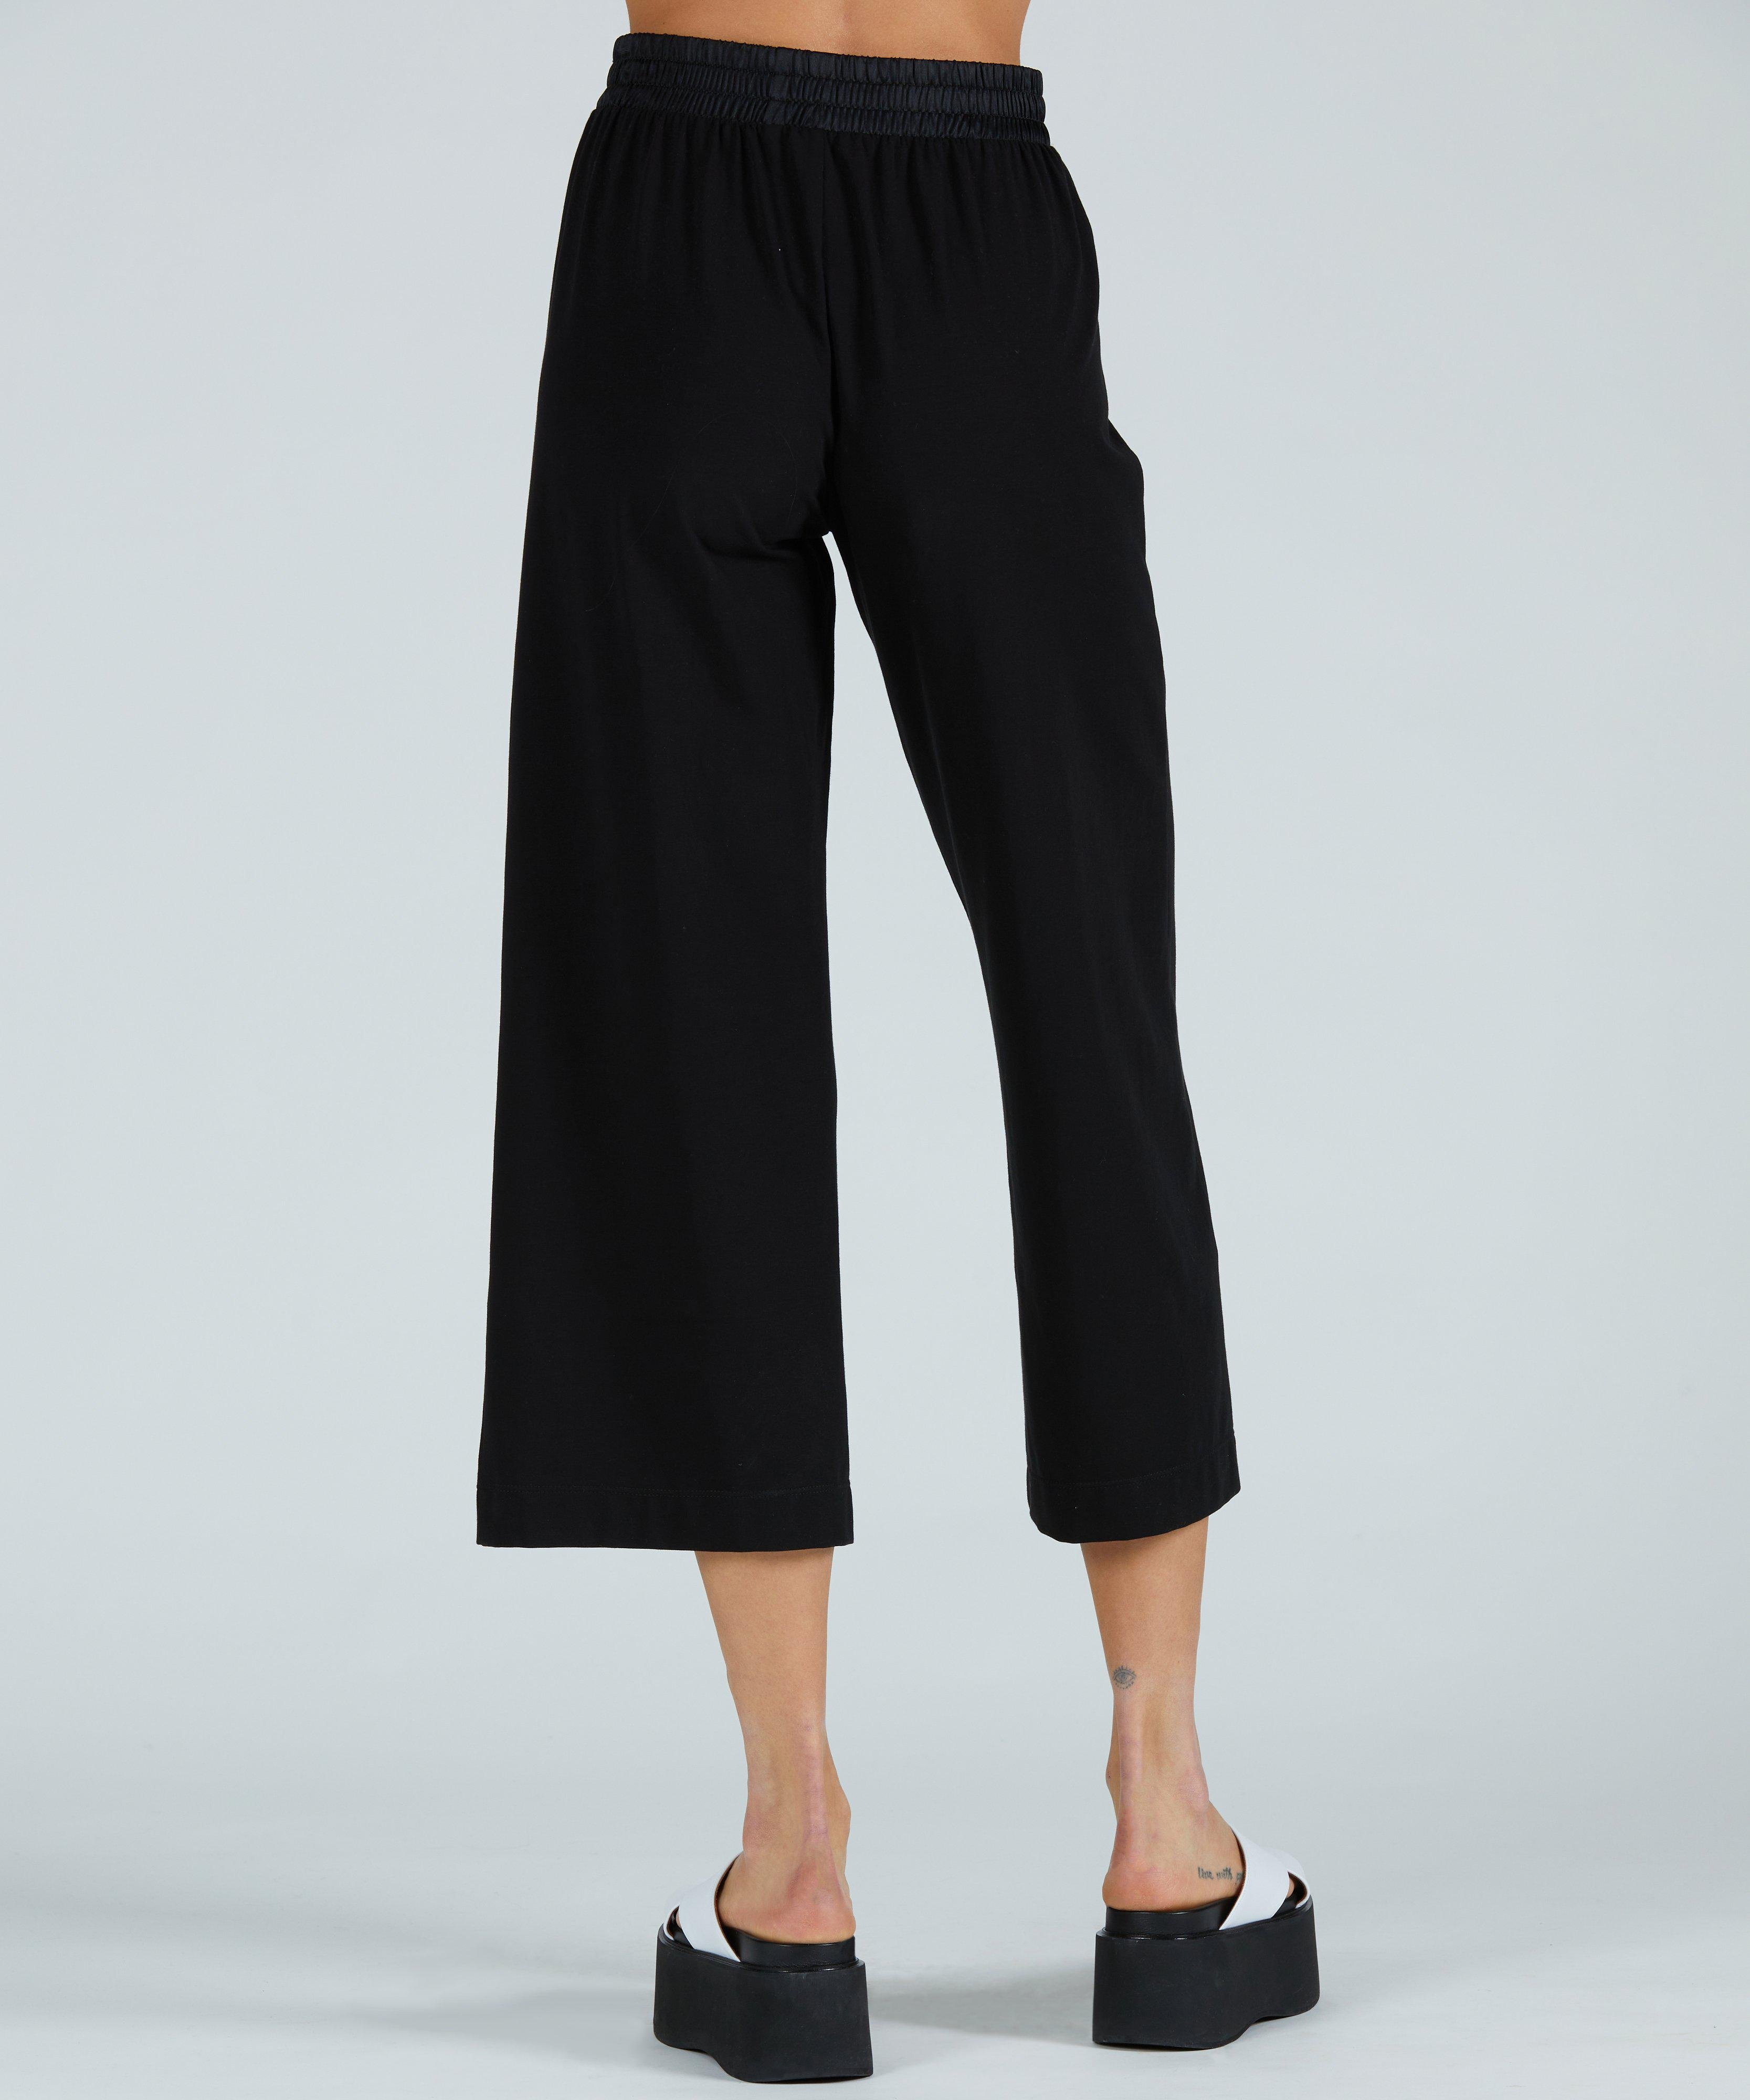 Pima Cotton Cropped Pull-On Pant - Black 2